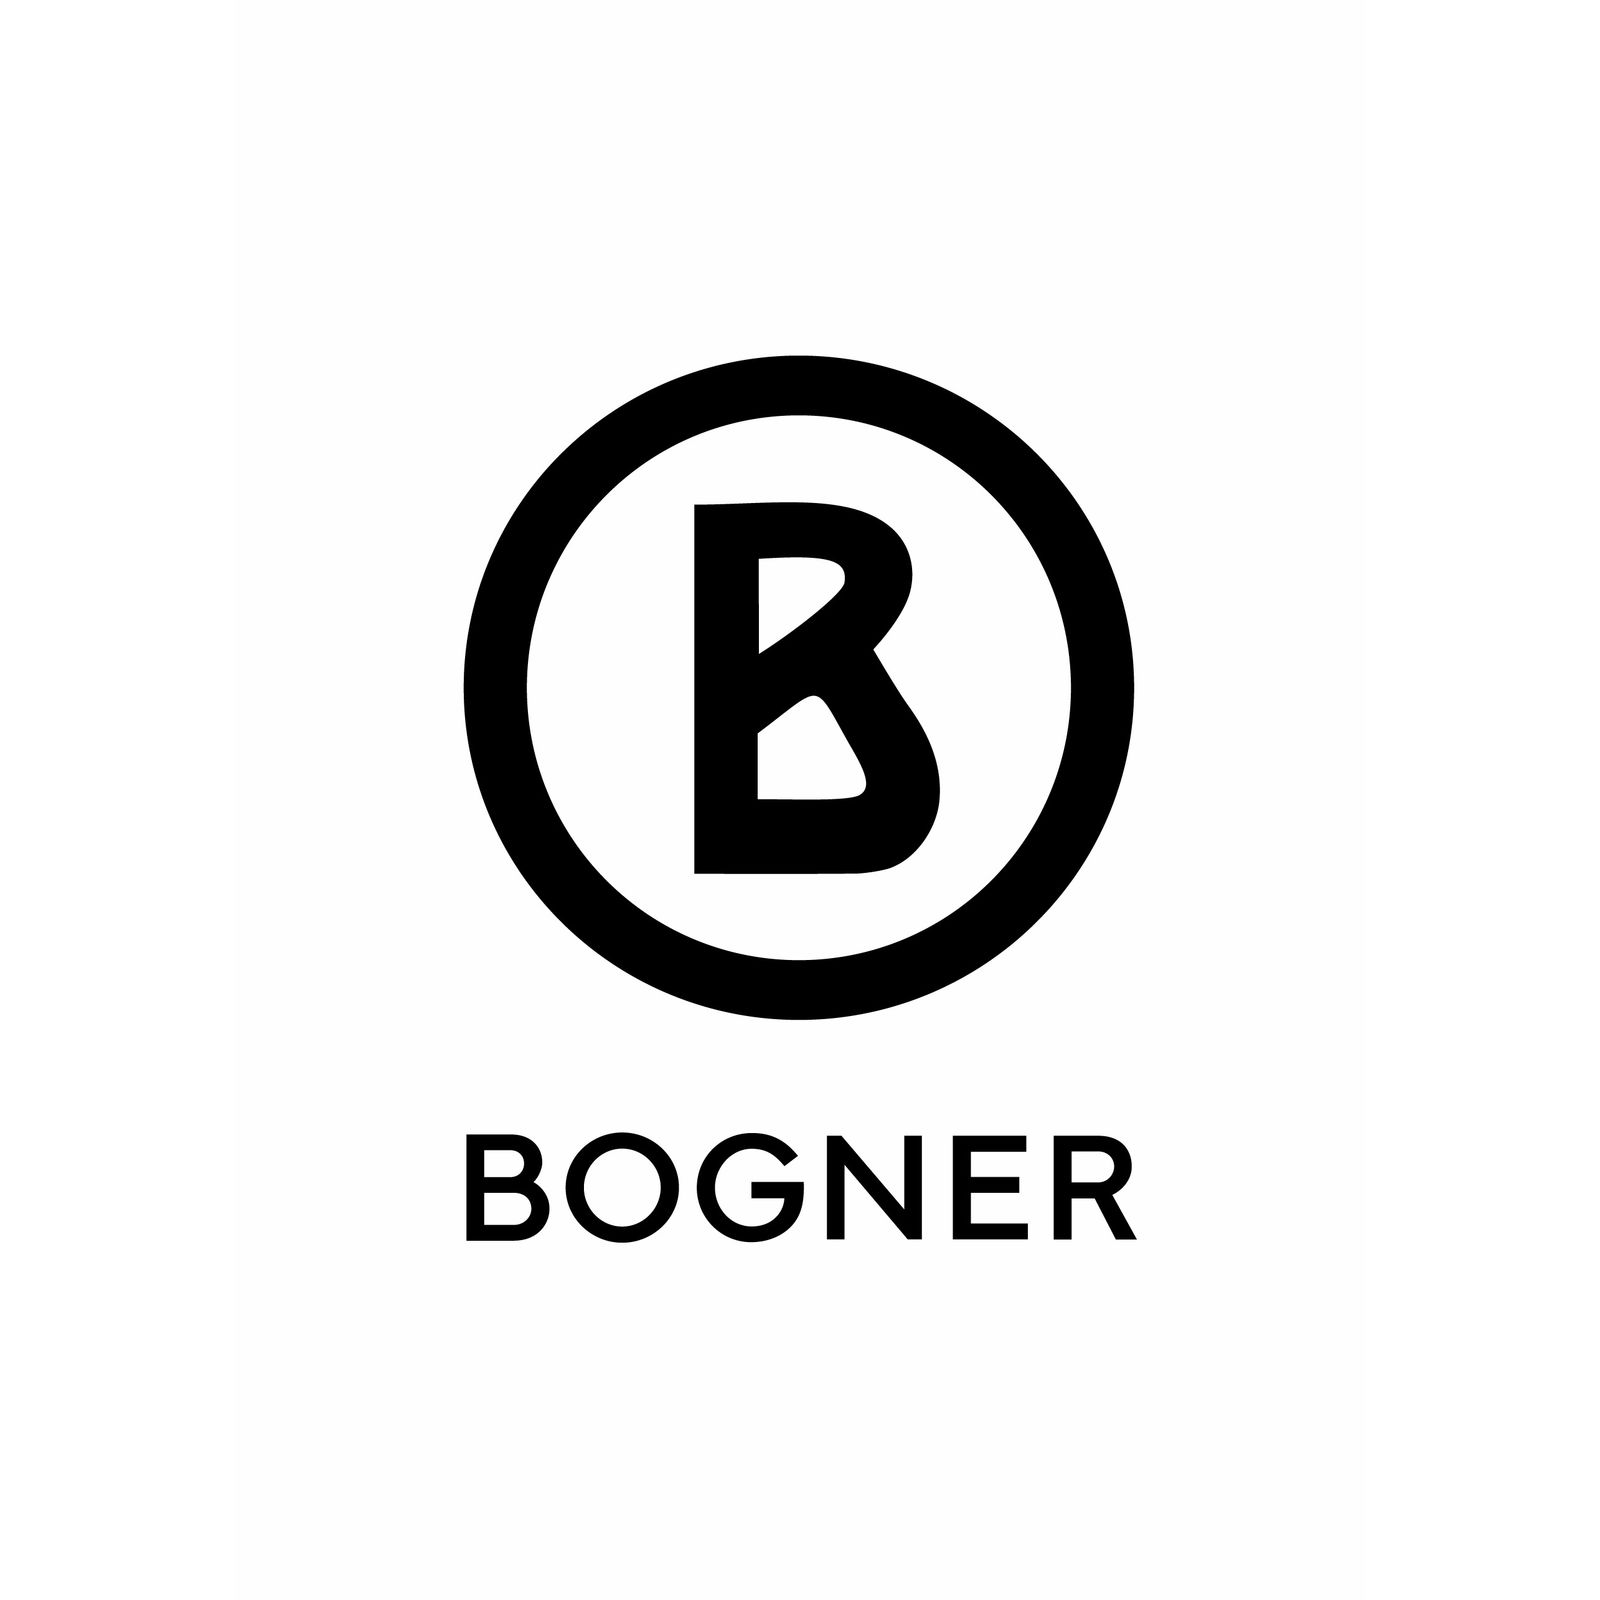 BOGNER Leather